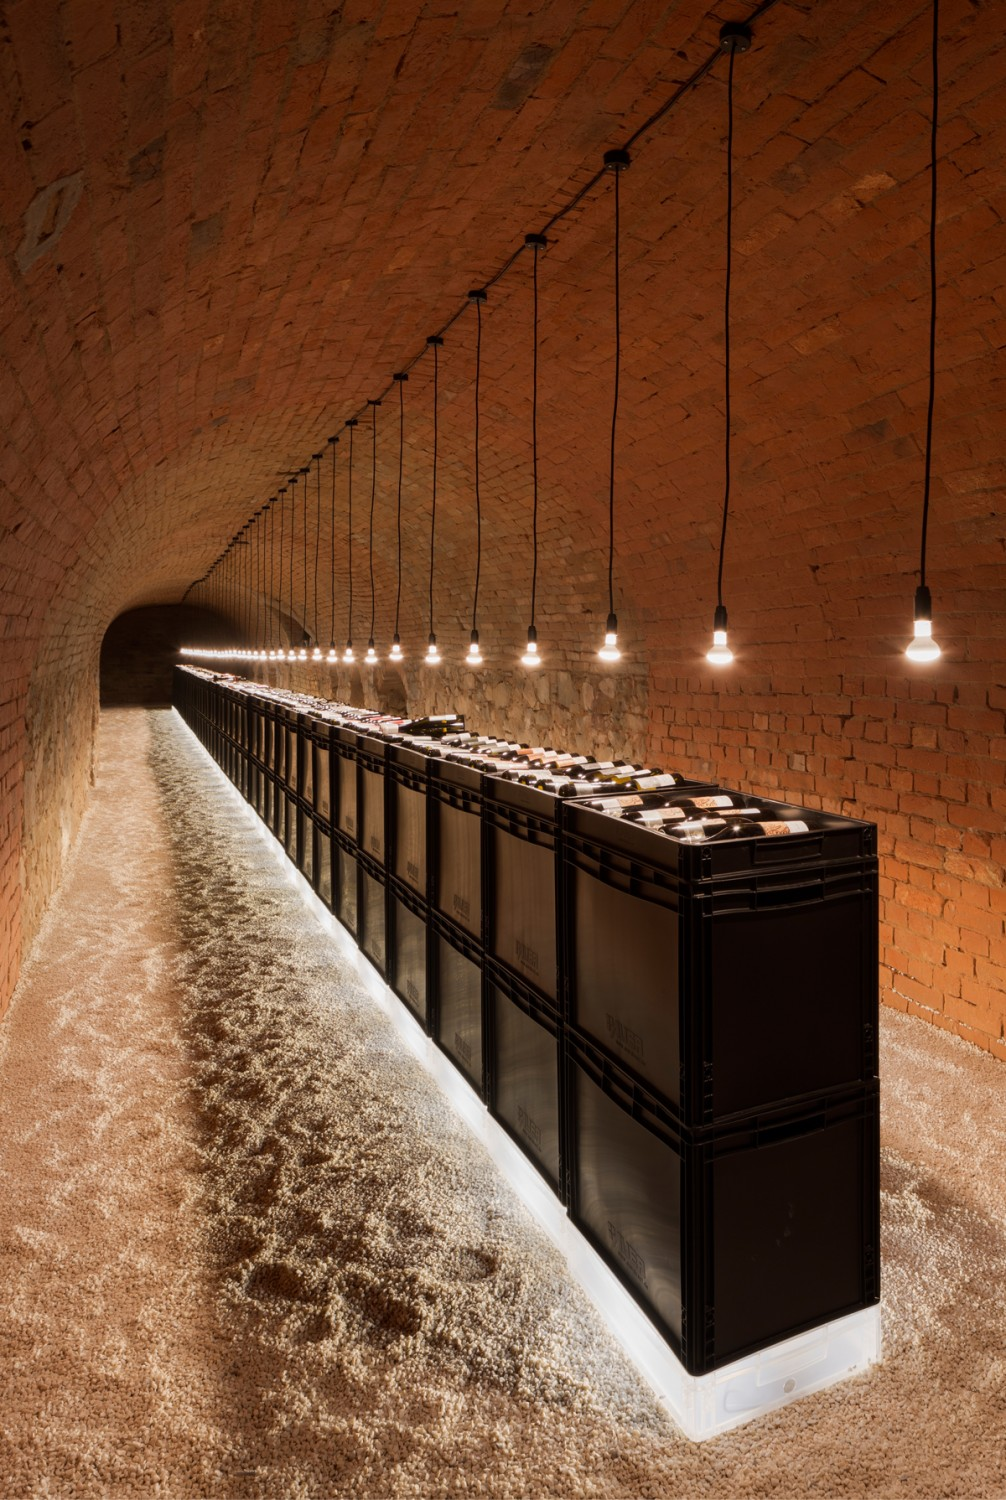 Strobl Winery by Wolfgang Wimmer + March Gut : on flodeau.com 017